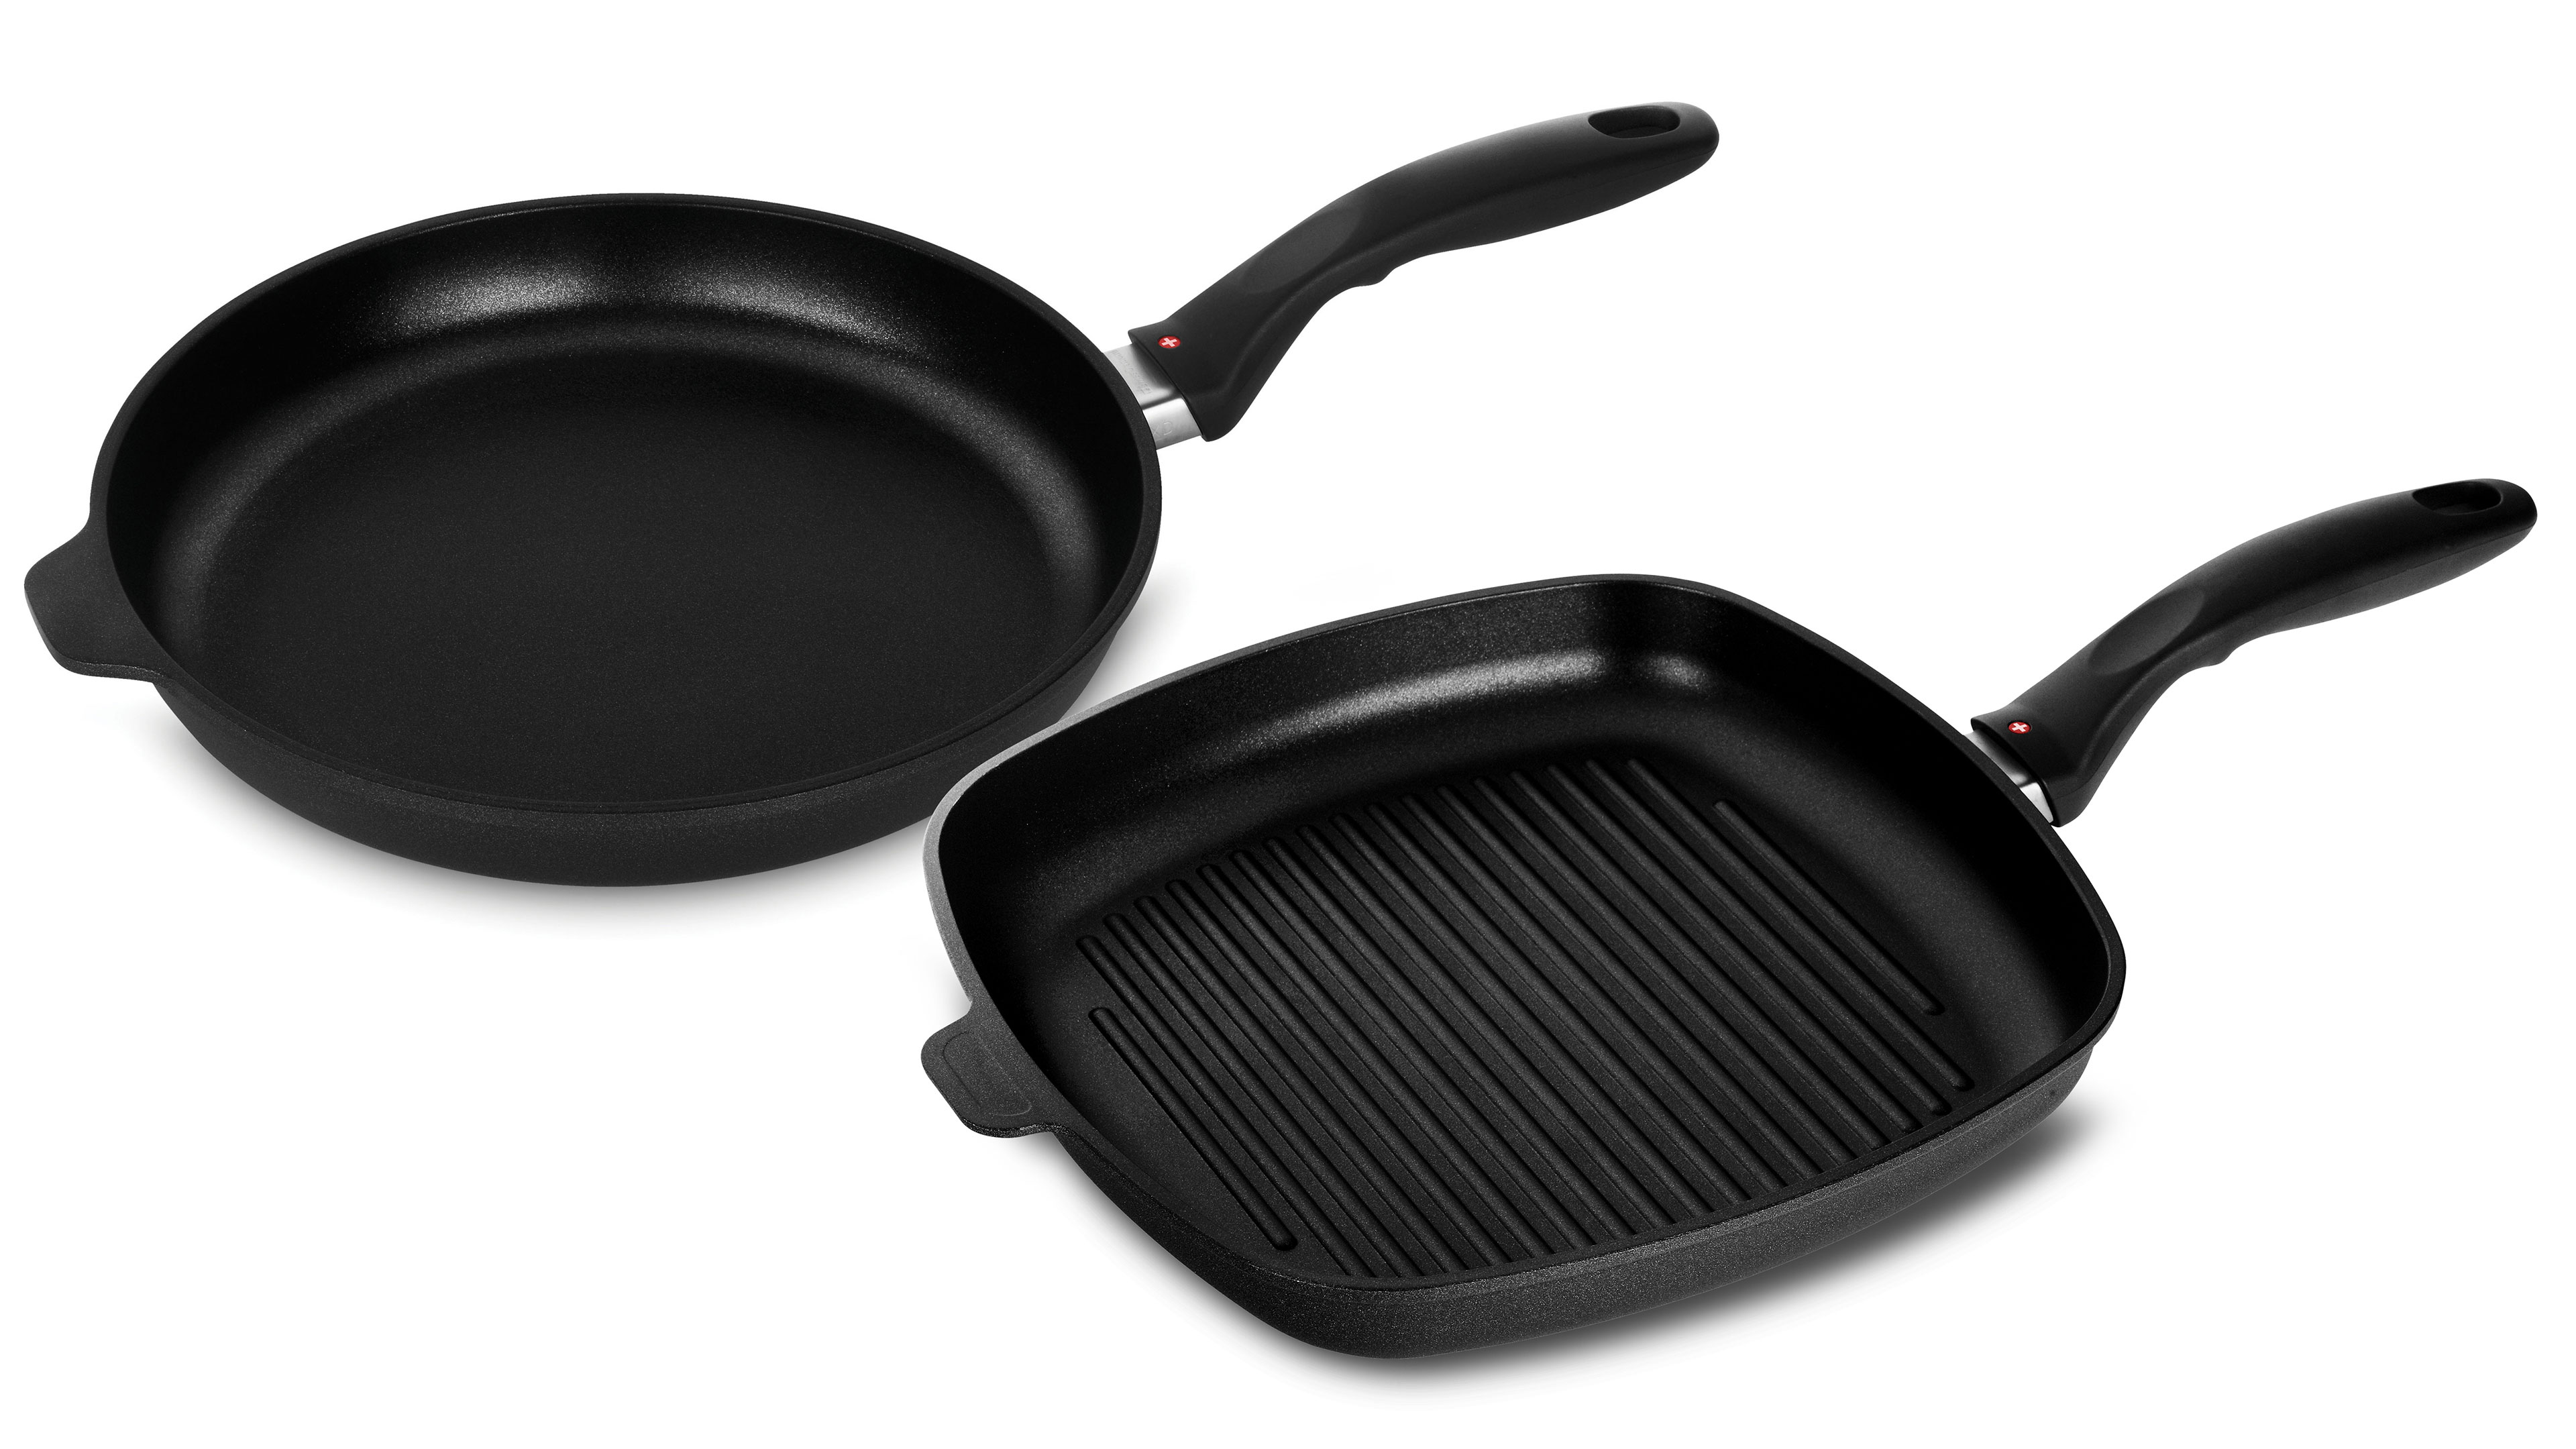 Grill Frying Pan Swiss Diamond Xd 2 Piece Nonstick Induction Fry Pan Grill Pan Set